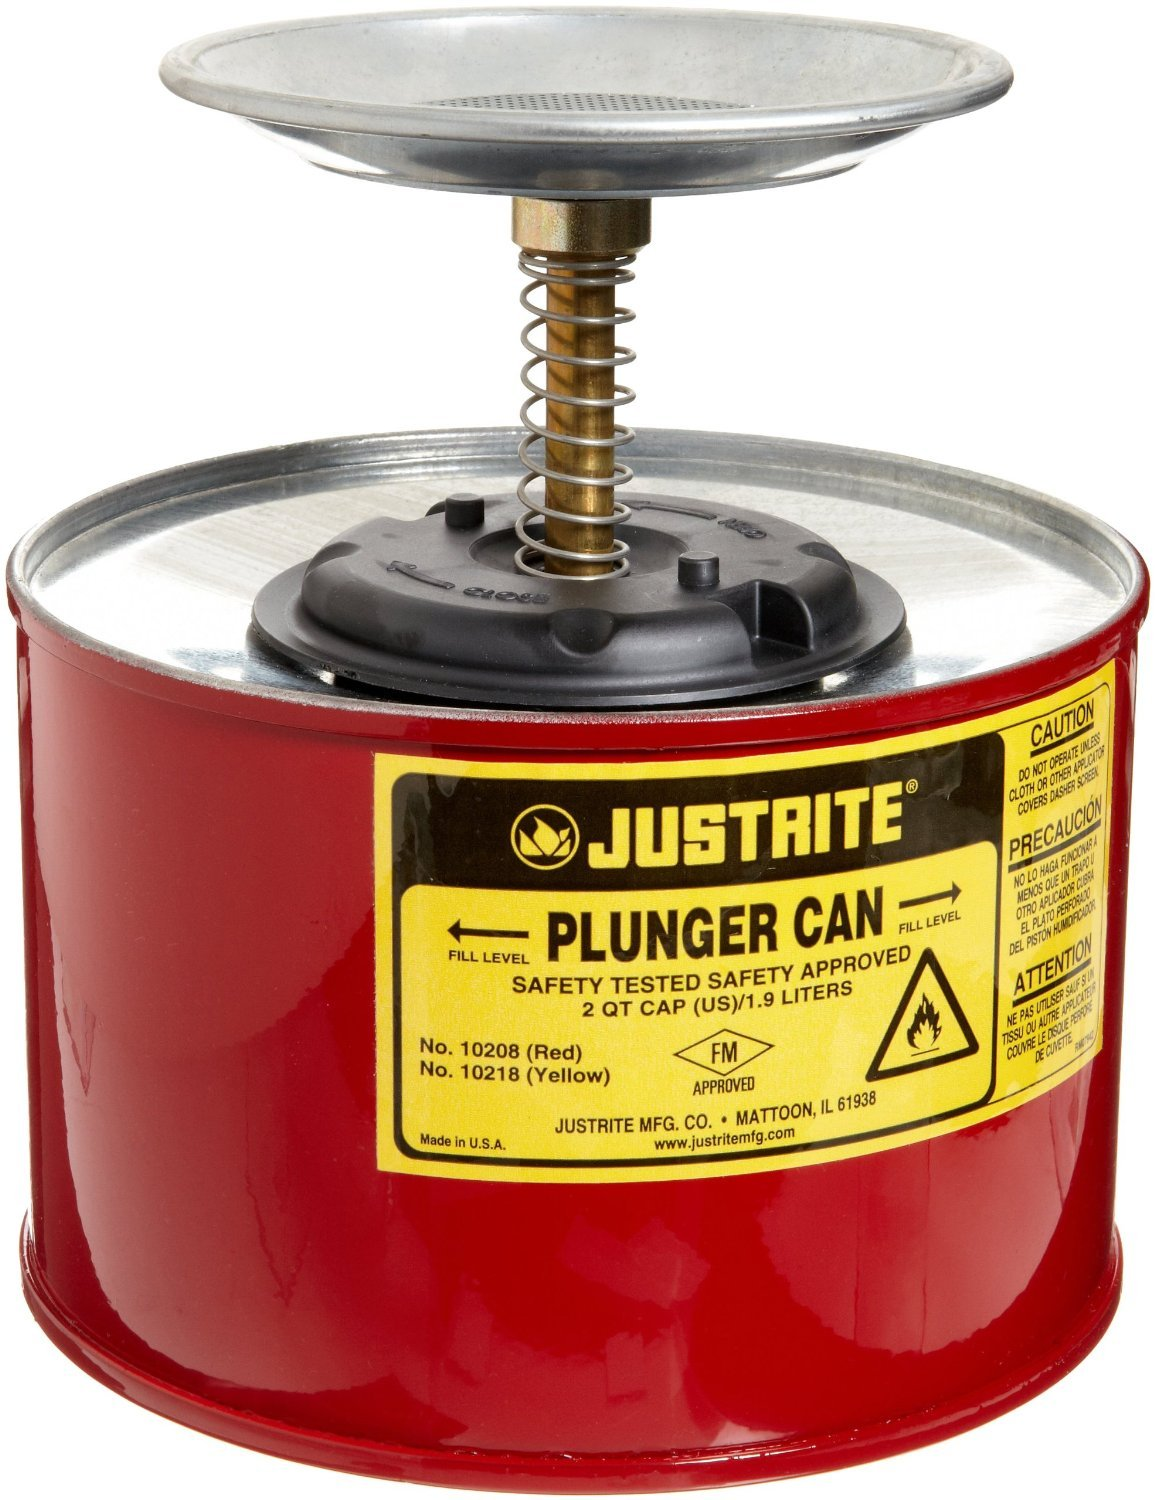 Justrite 10208 2 Quart Red Galvanized Steel Safety Plunger Can with 5 Dasher Plate and Brass/Ryton Plunger Assembly, Plastic, 1'' x 1'' x 7.38''